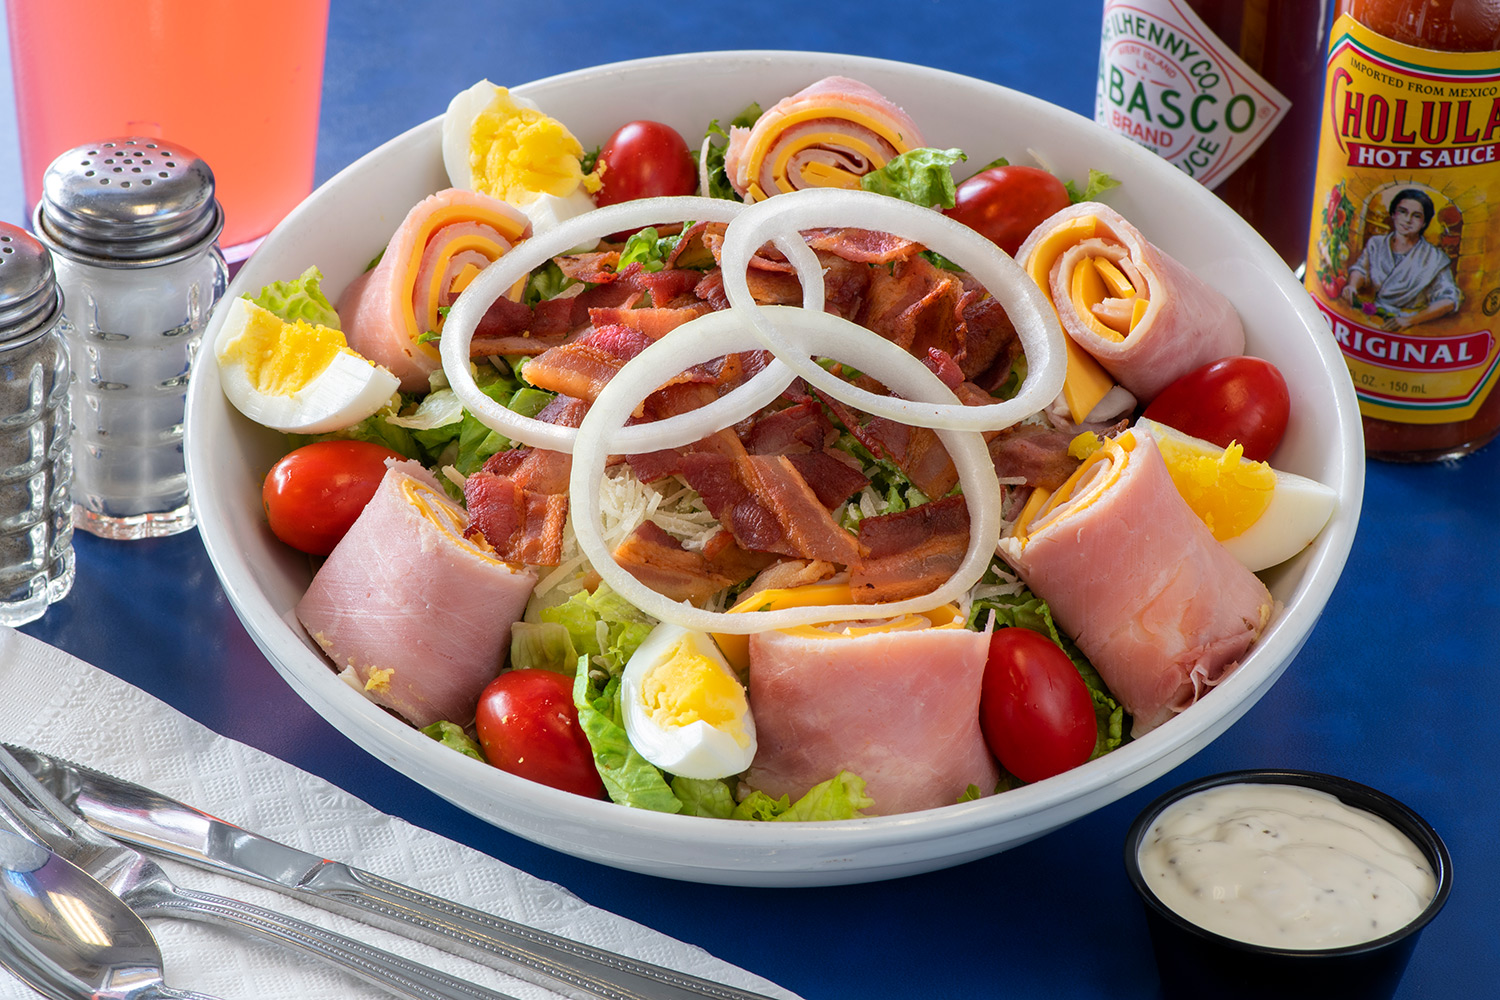 Chef salad with ham, cheese, onions, hard boild eggs and tomatoes